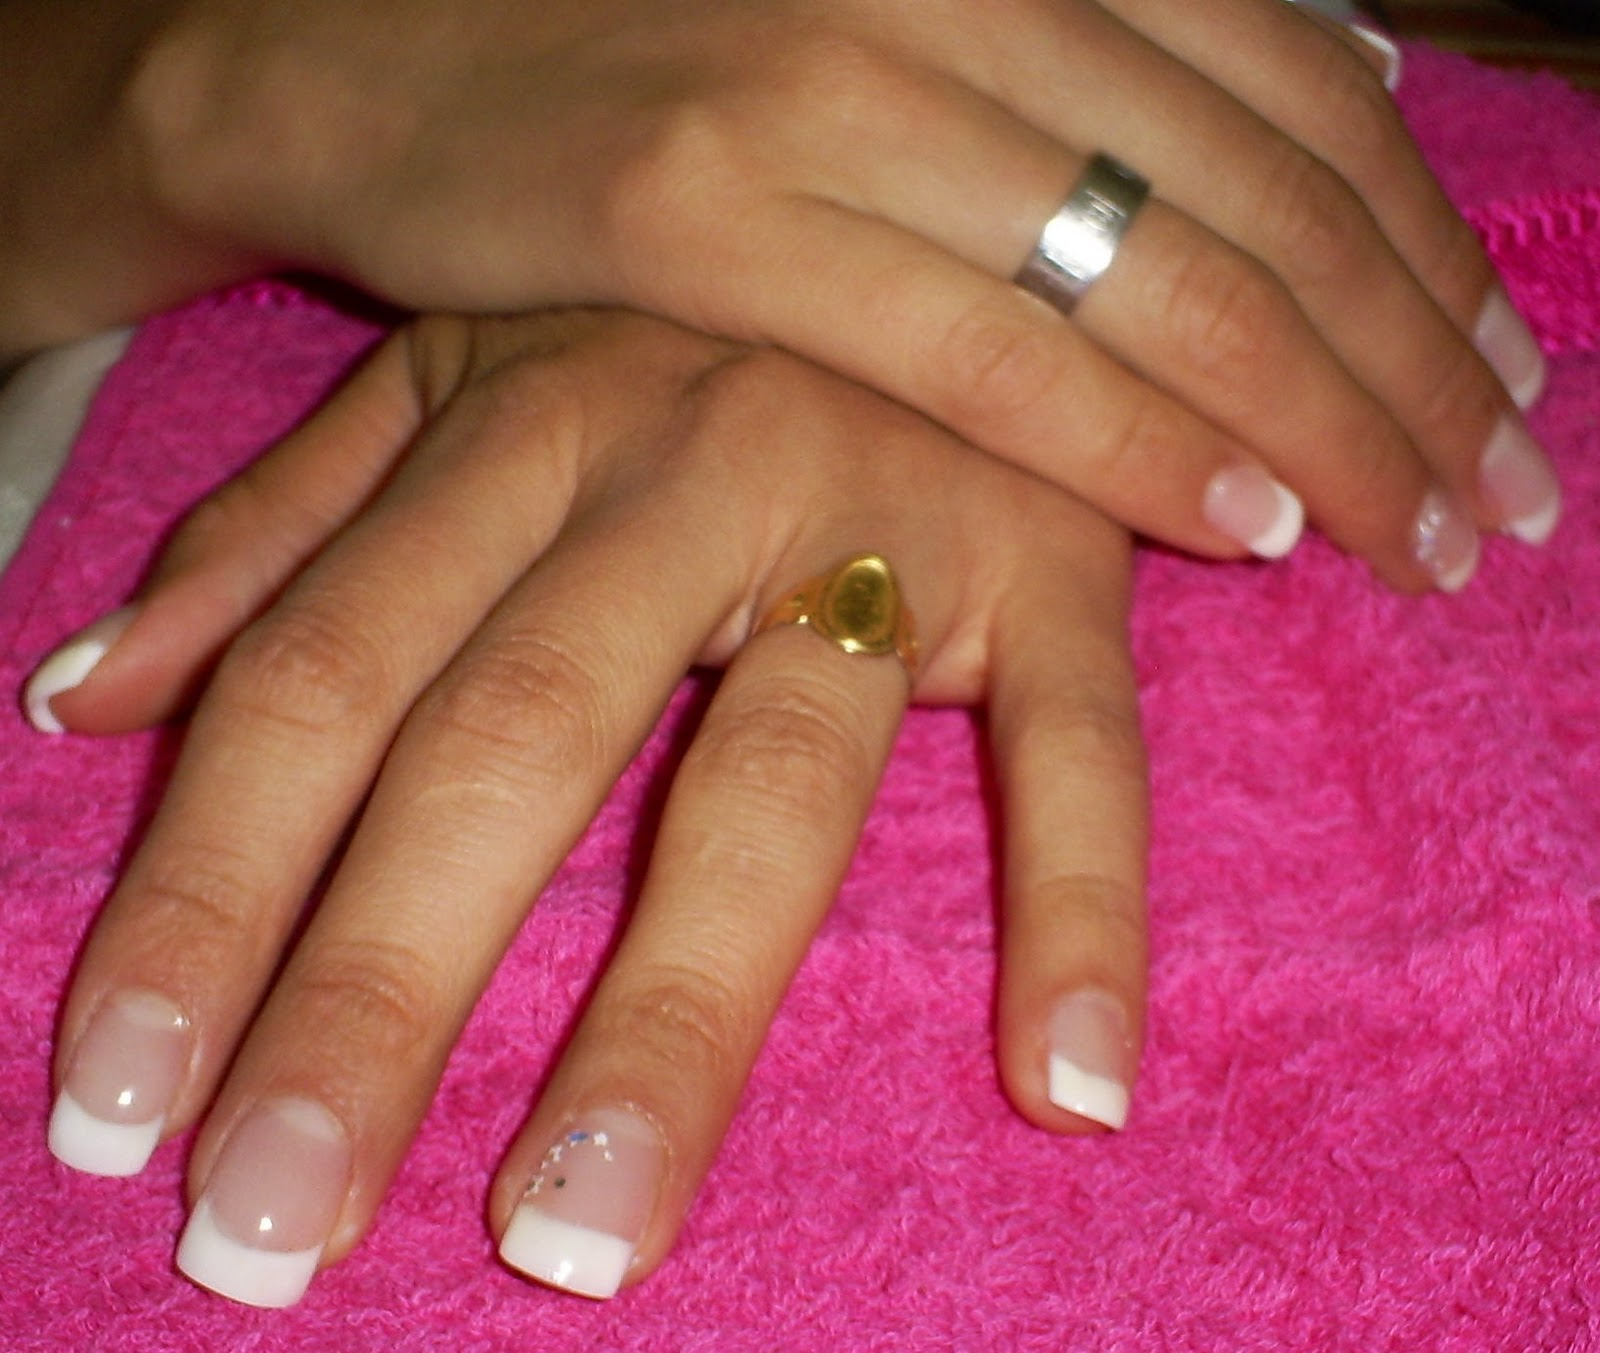 Glamnails Make Up And Nails By Silvana Ramos Mitos Y